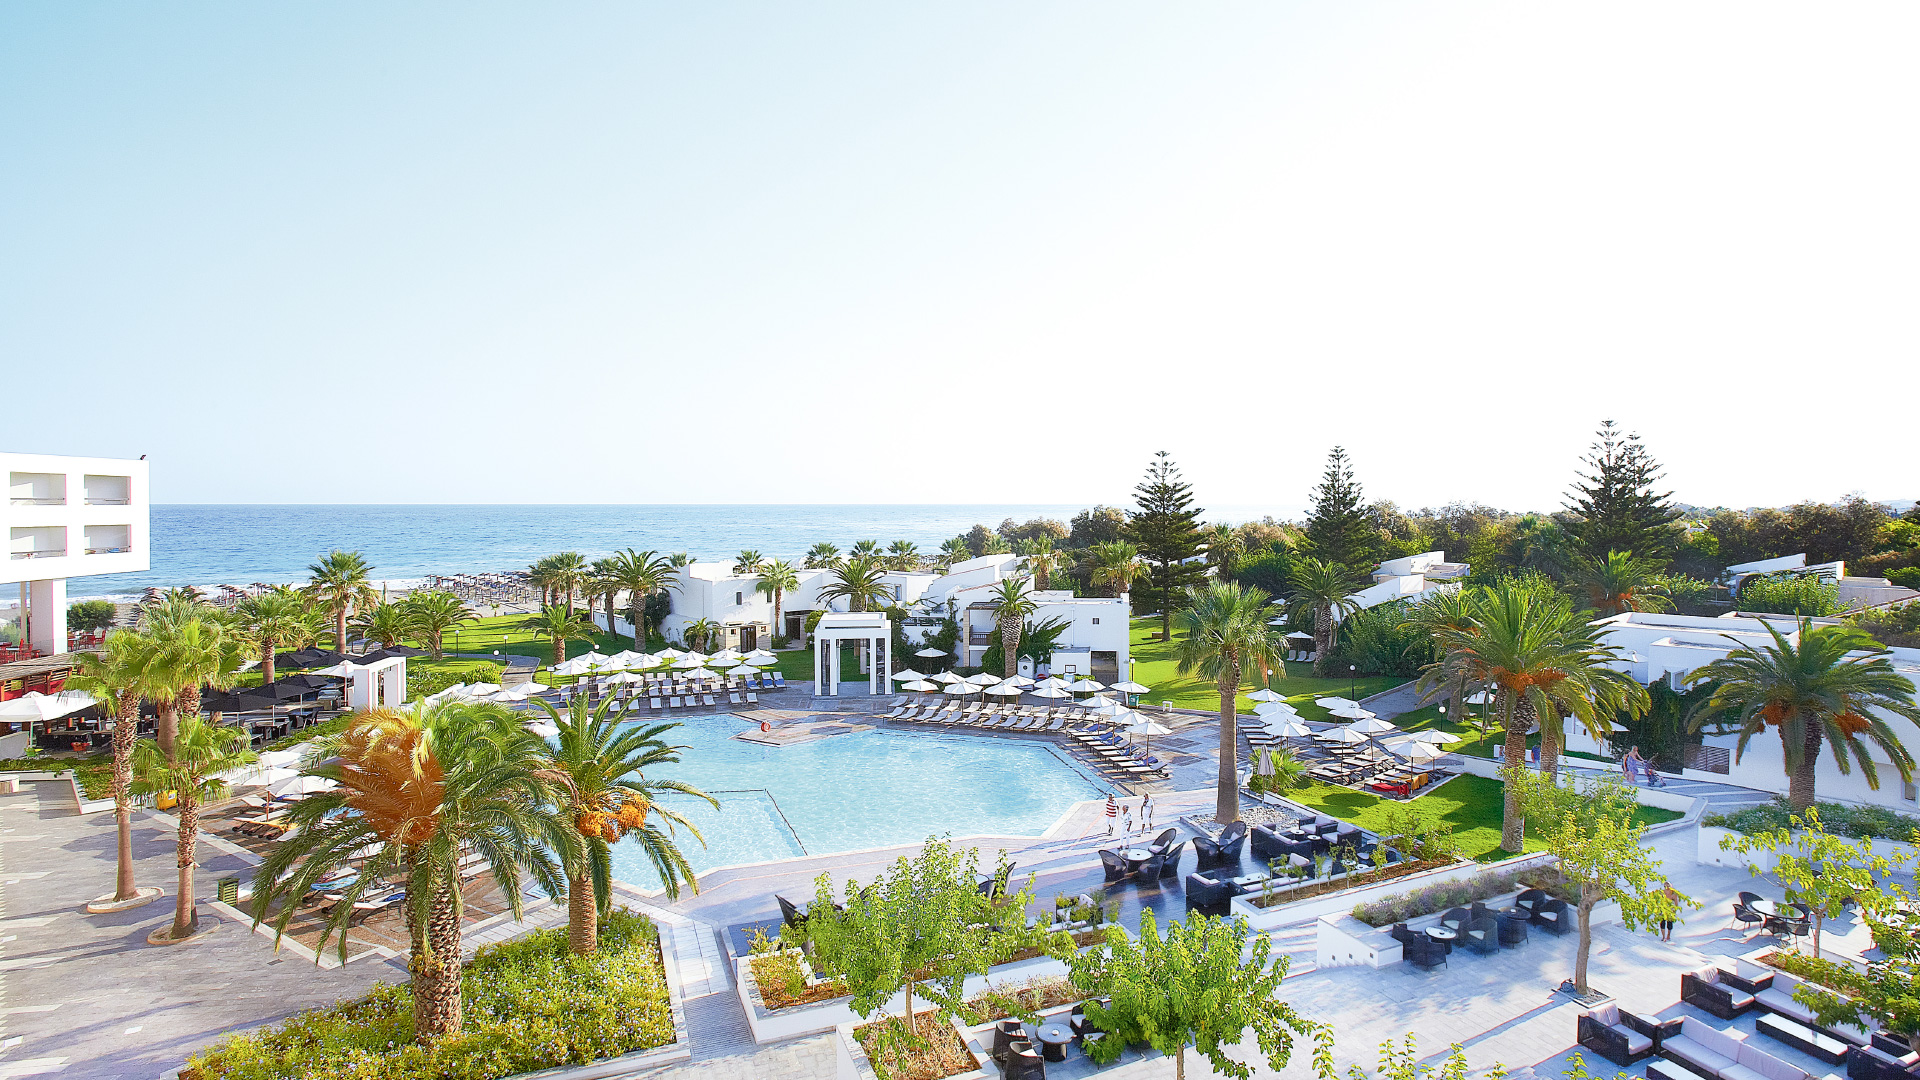 creta-palace-crete-luxury-resort